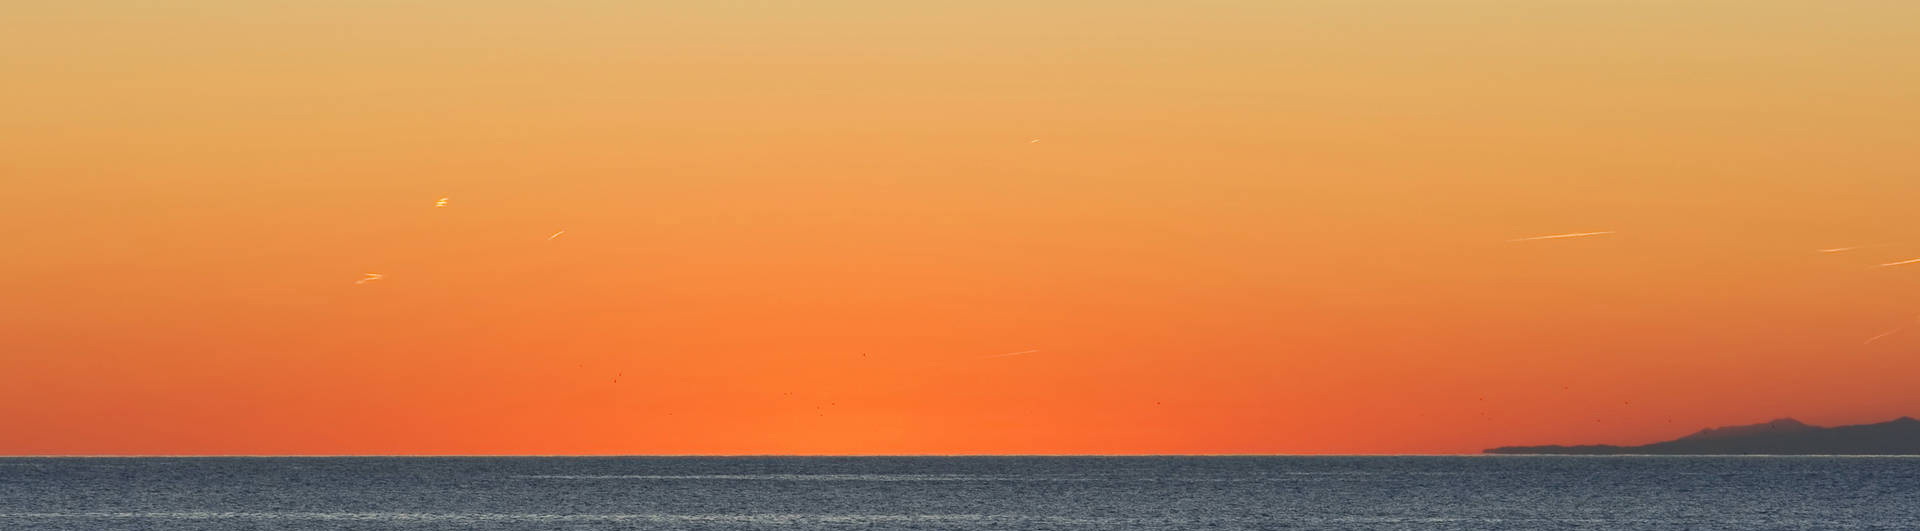 beautiful sunset in Mediterranean sea while a fishing boat returns to port